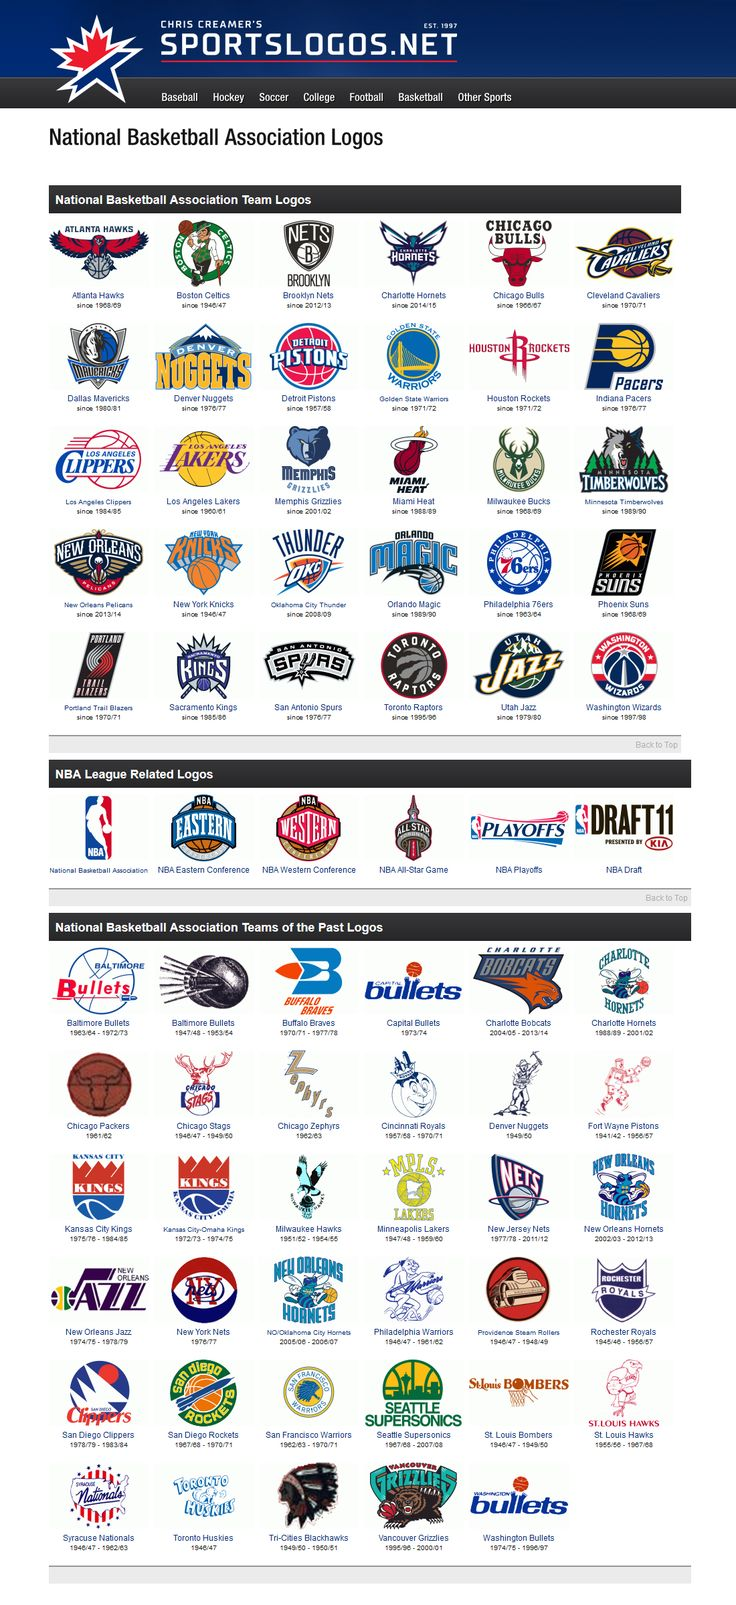 complete history of Sports Logos (from ALL OVER THE WORLD, from EVERY LEAGUE), by Chris Creamer | all sports are included. this particular infographic looks at the NBA. clicking on a team will give you the complete history of their logo. fully INTERACTIVE: http://www.sportslogos.net/teams/list_by_league/6/National_Basketball_Association/NBA/logos/ #NBA #basketball #FIBA #NFL #football #Soccer #MLS #WorldCup #FIFA #MLB